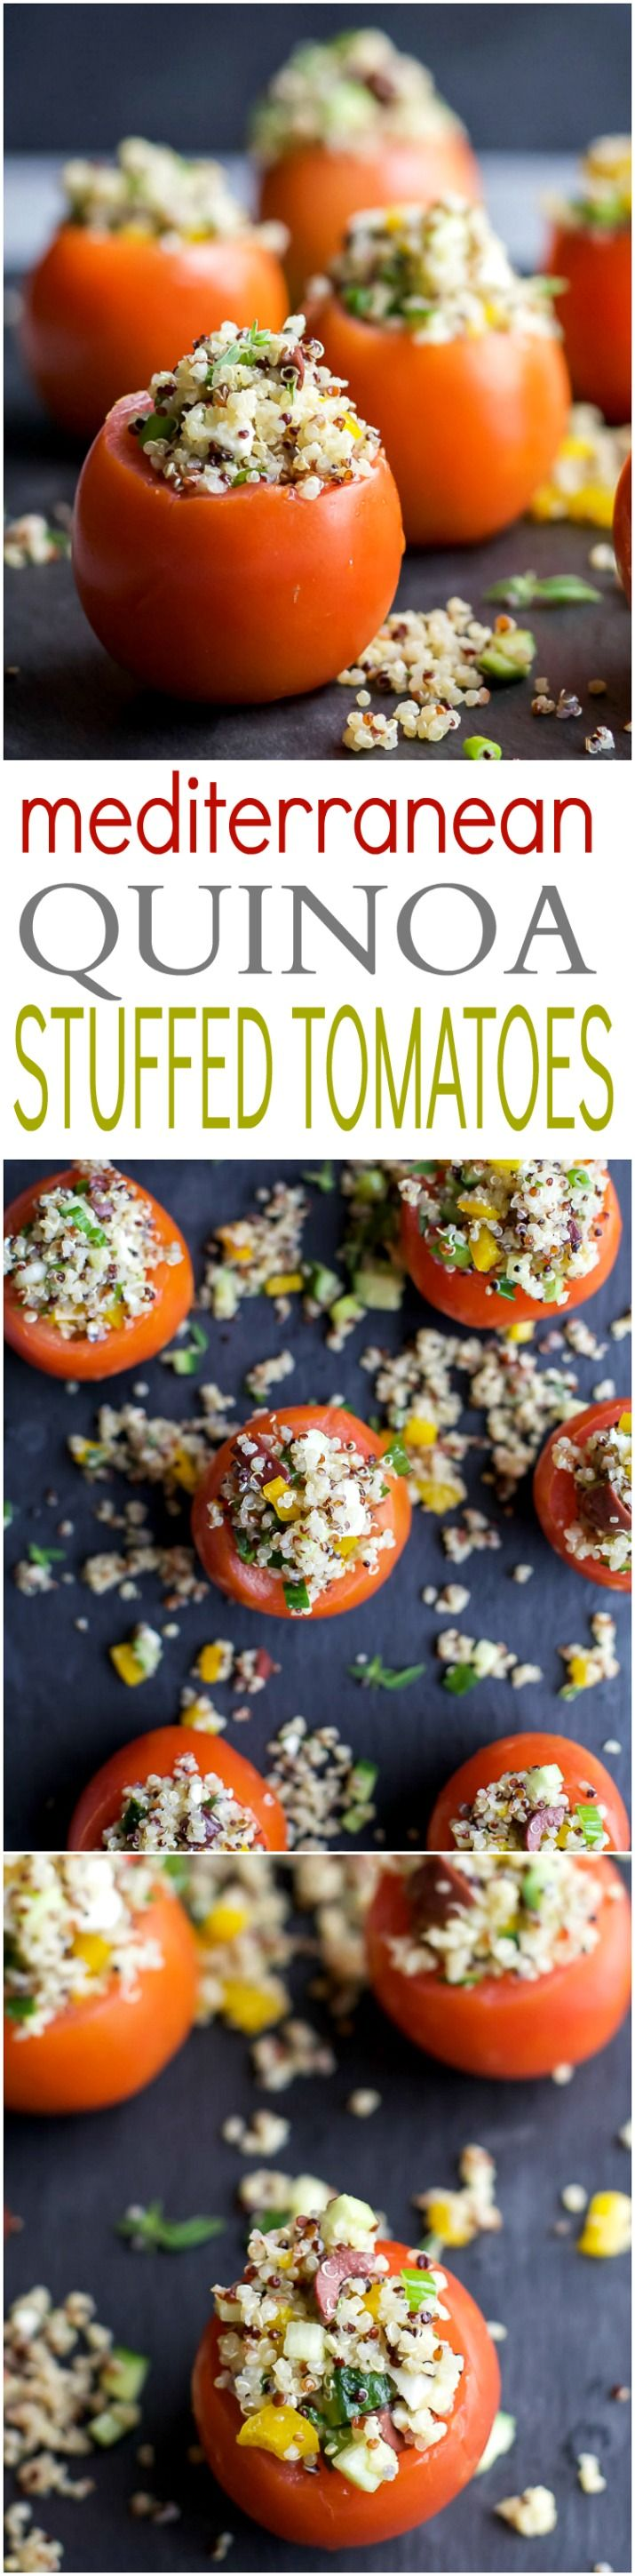 MEDITERRANEAN QUINOA STUFFED TOMATOES - an easy, light, and refreshing vegetarian recipe that's only 142 calories! The perfect side dish for your next summer party! | joyfulhealthyeats.com | gluten free recipes